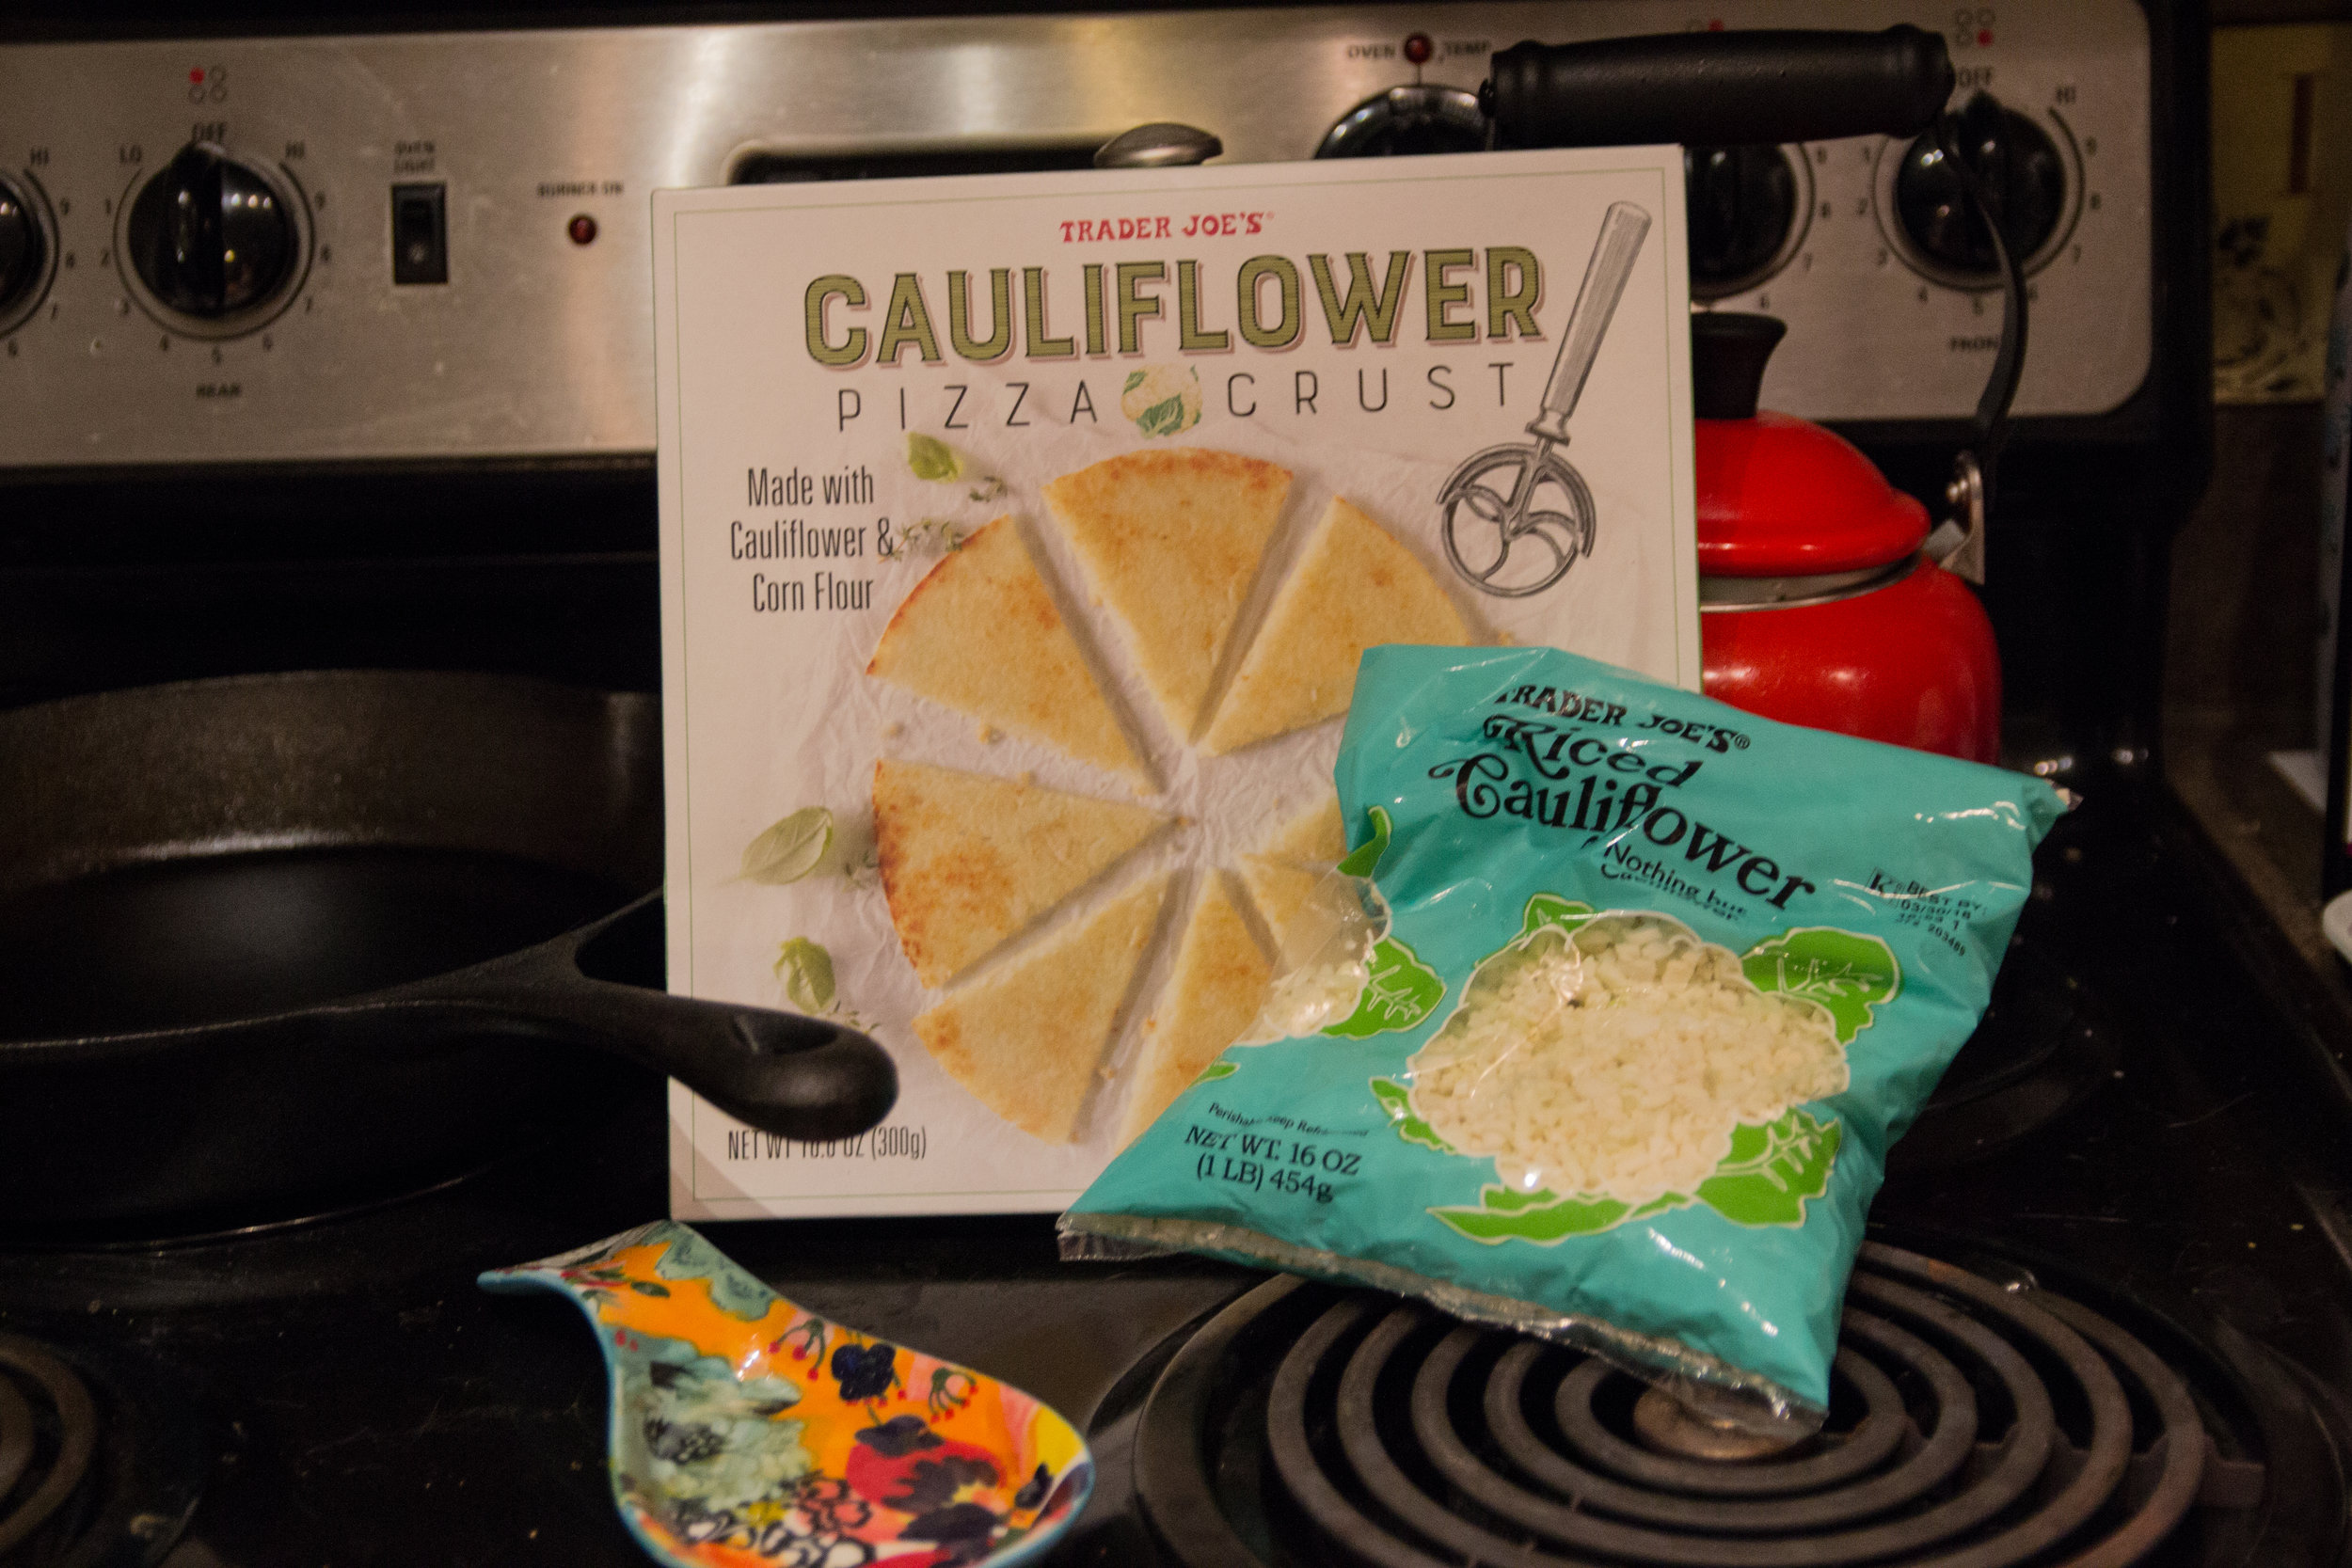 best things to buy from trader joe's, what to buy from trader joe's, favorite 13 items from Trader Joe's,  cauliflower pizza crust, riced cauliflower